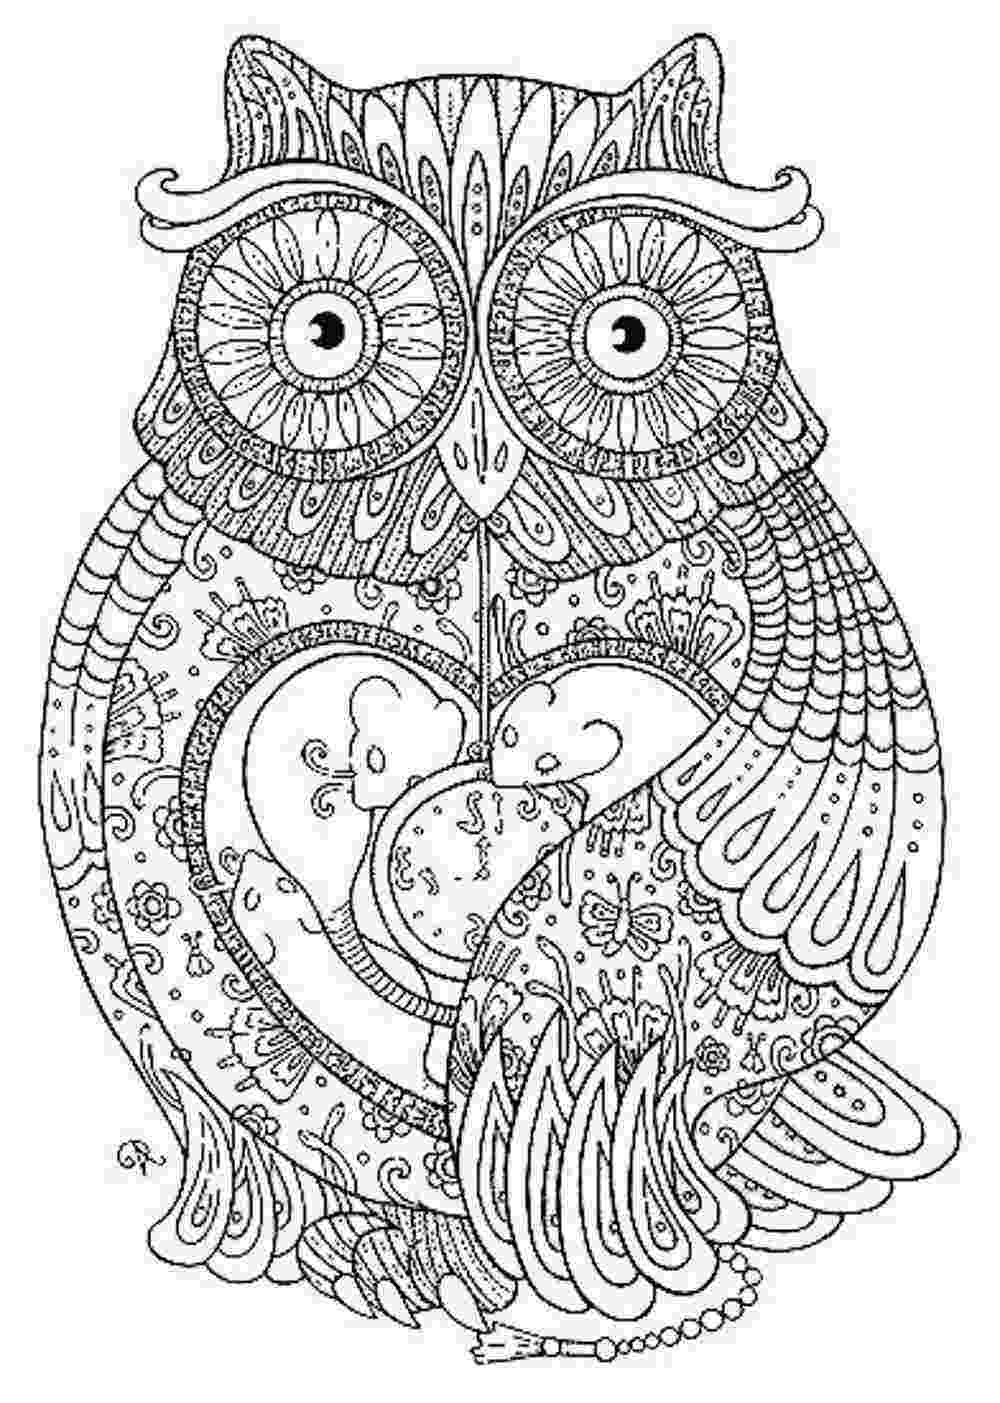 mandala coloring book online pin by lizet barokas koldan on mandala mandala coloring coloring mandala book online